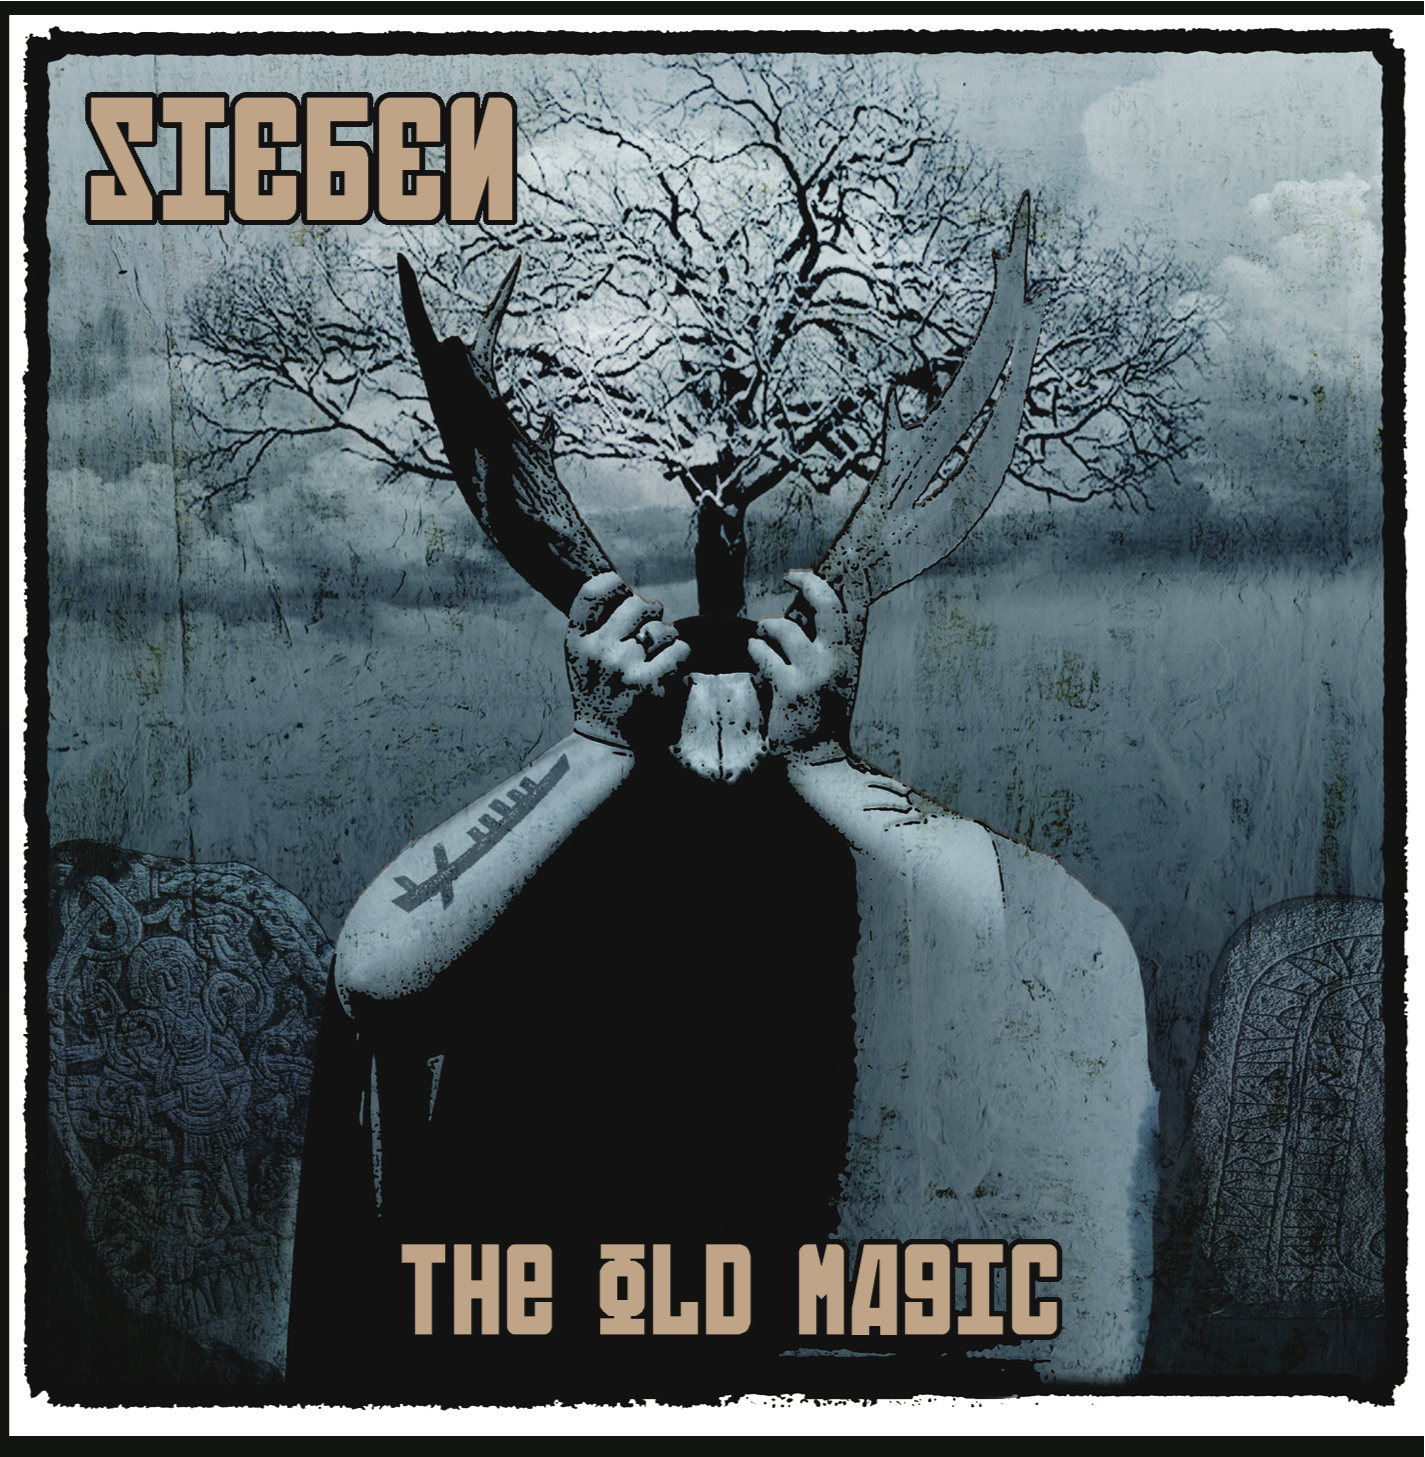 REDROOM RECORDS releases SIEBEN - The Old Magic